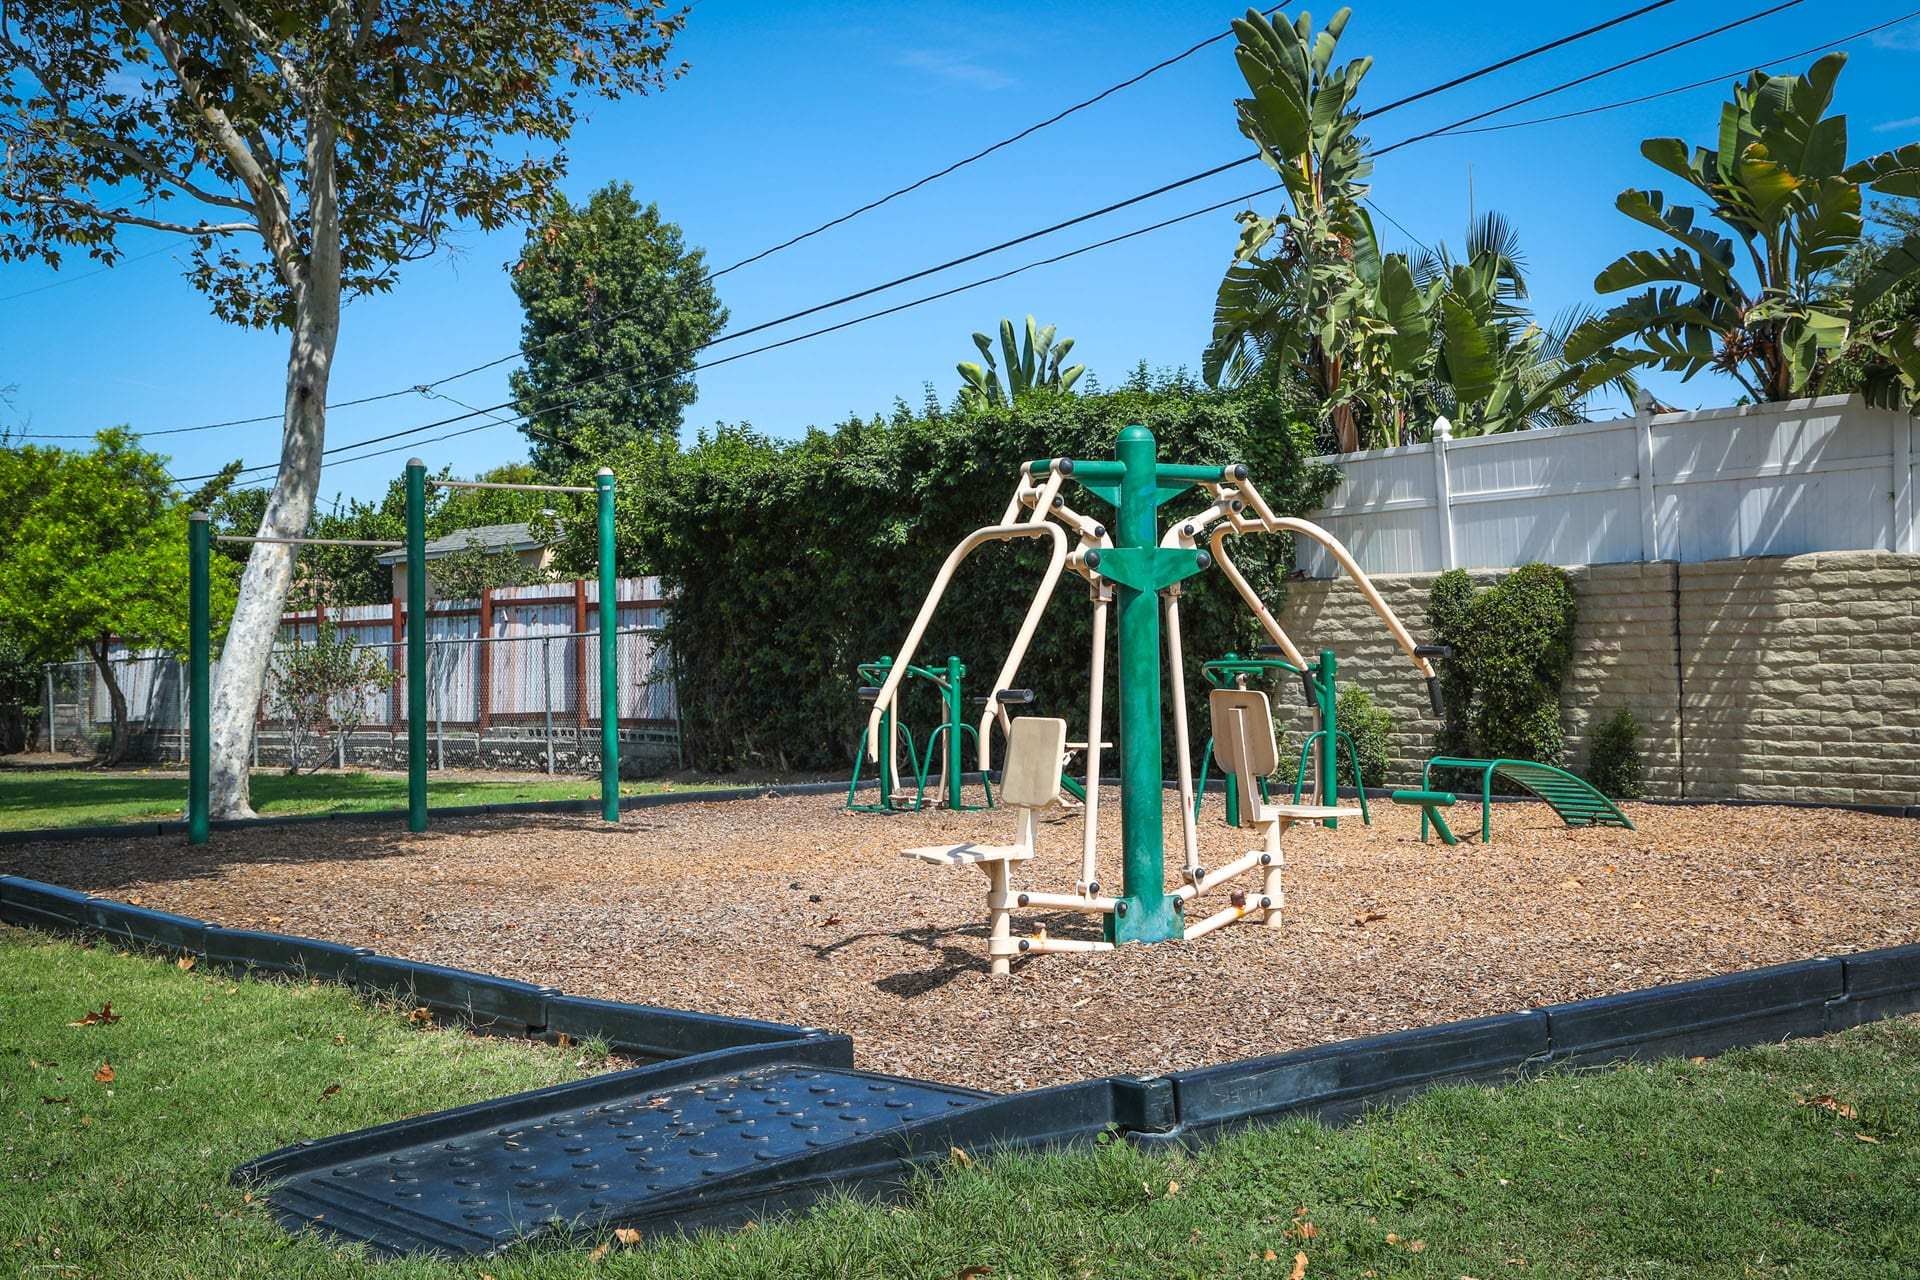 Exercise equipment on a wood chip turf